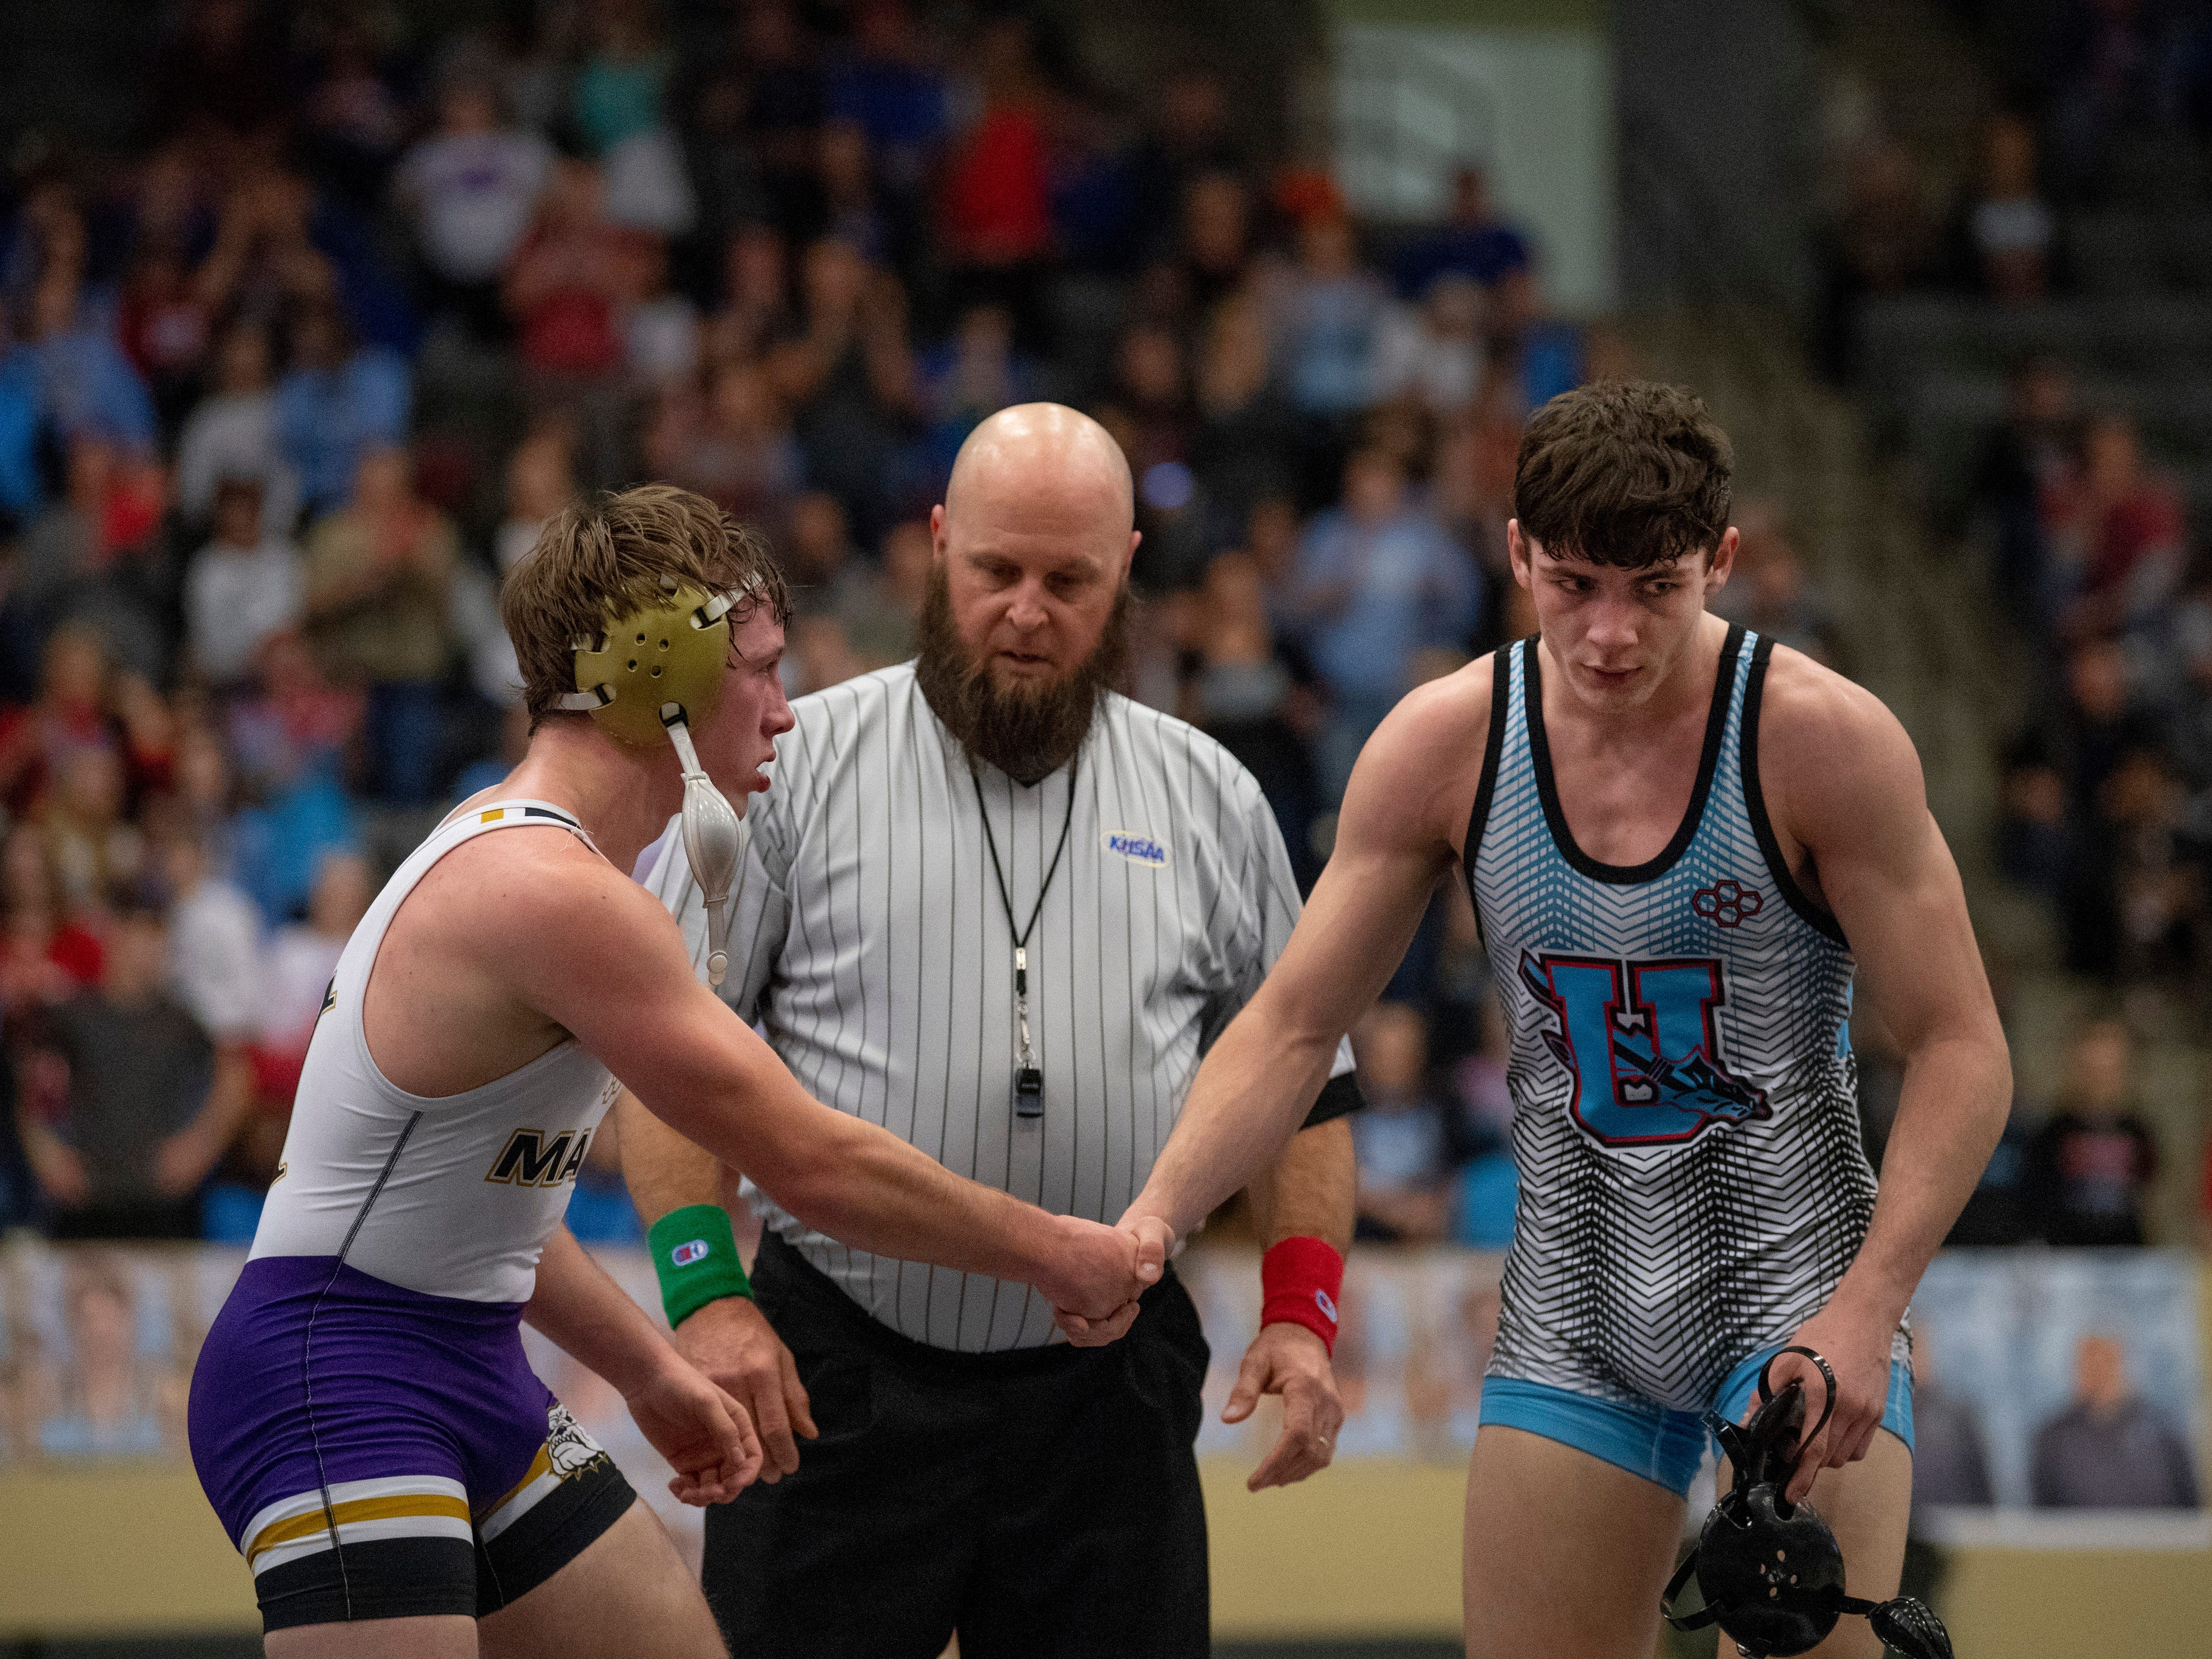 Male's Zane Brown and Union County's Stephen Little shake hands after their 160-pound championship match at the KHSAA State Wrestling Championships at the Alltech Arena in Lexington, Ky., Saturday afternoon. Brown beat Little for his third state championship.